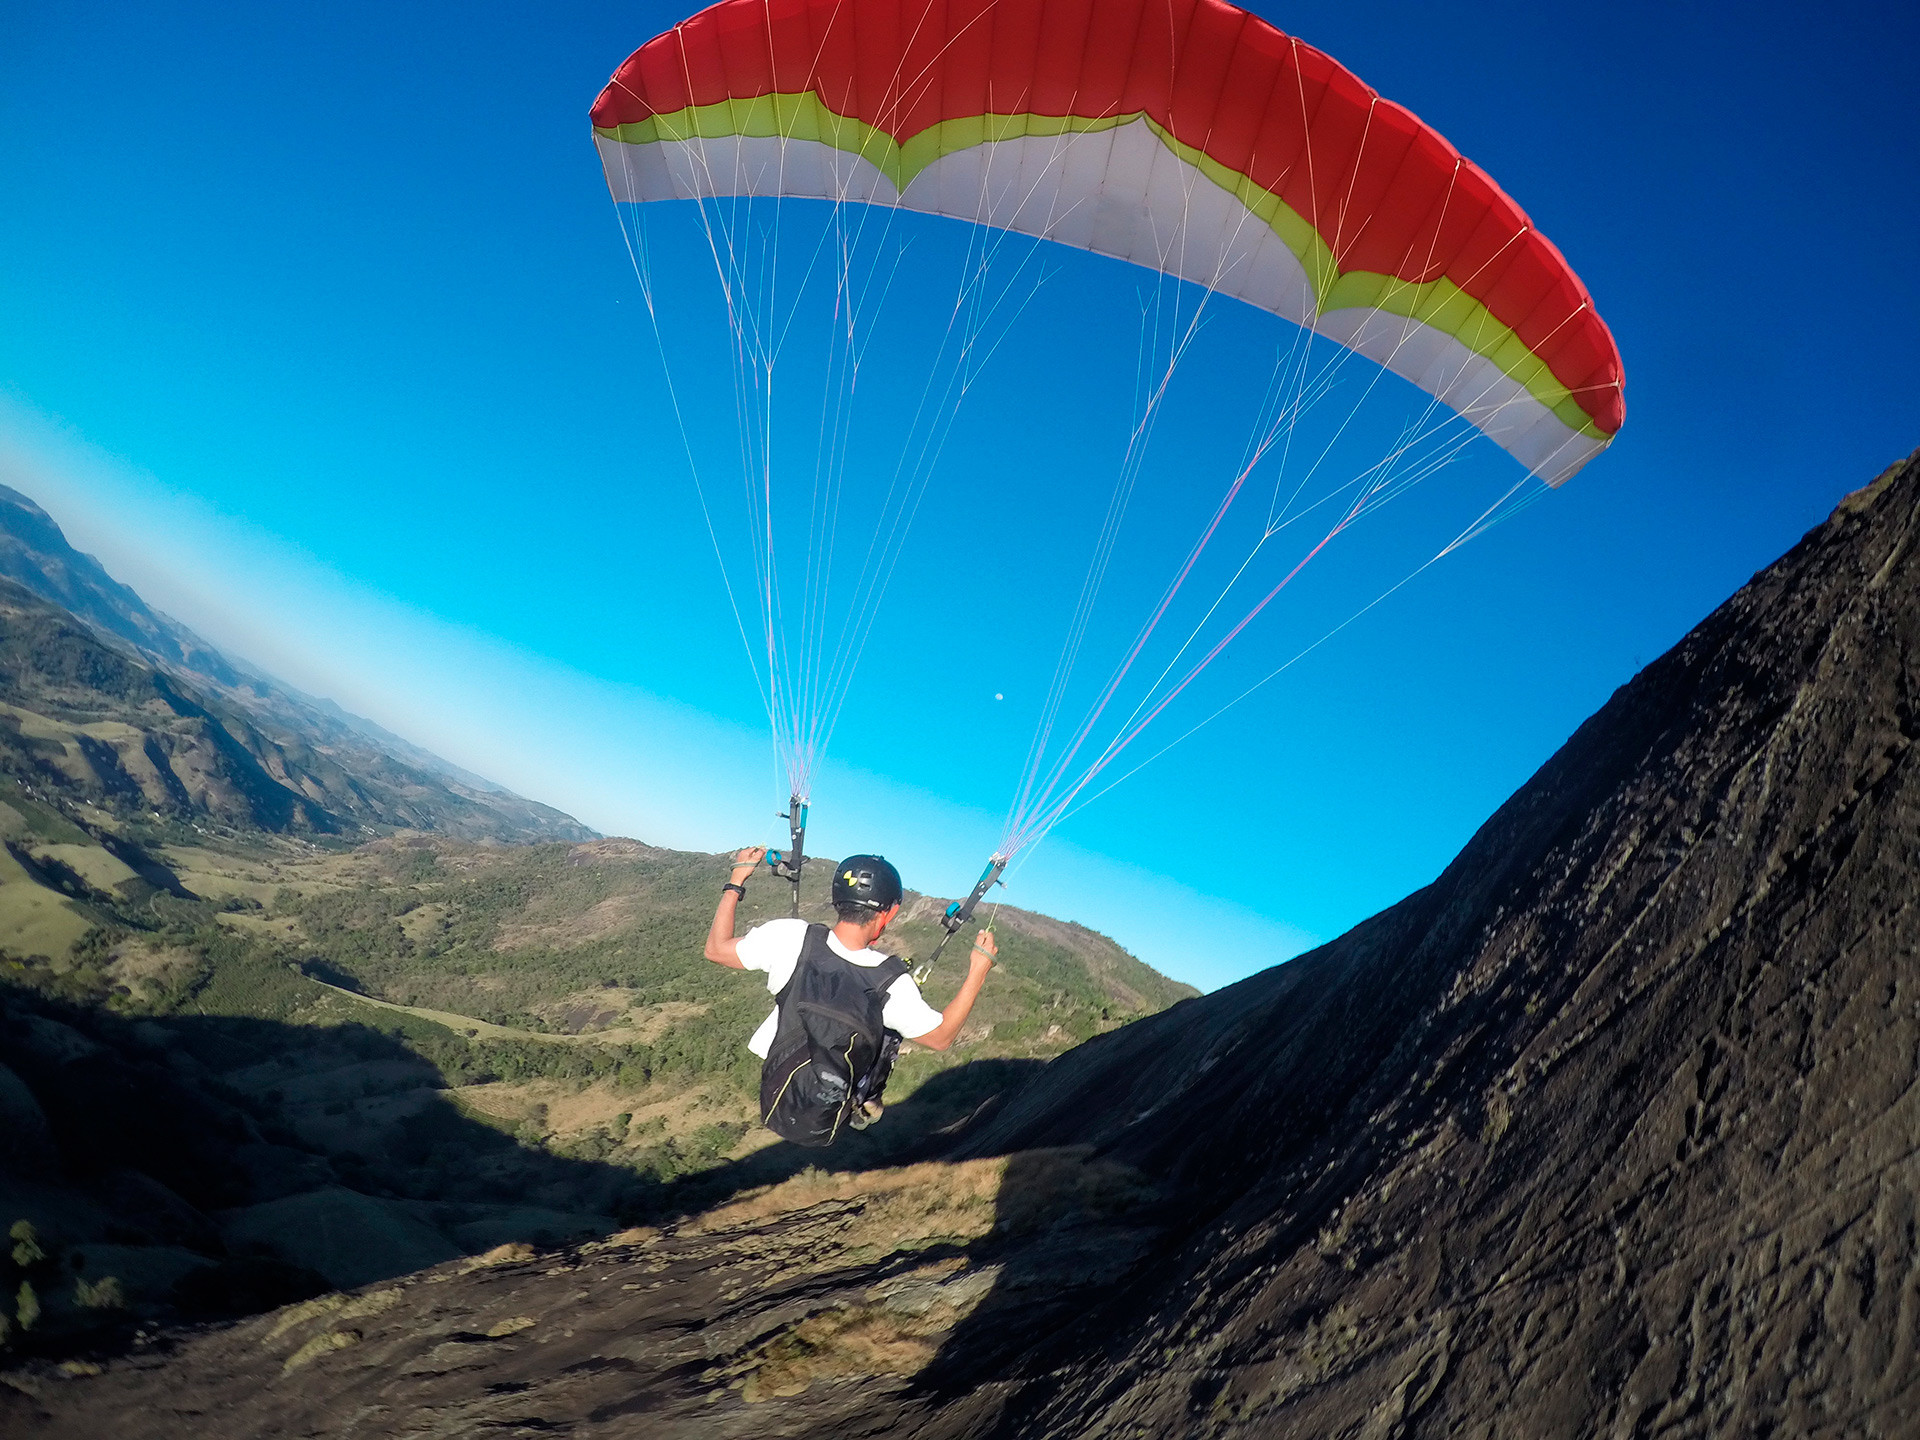 Extreme paragliding.